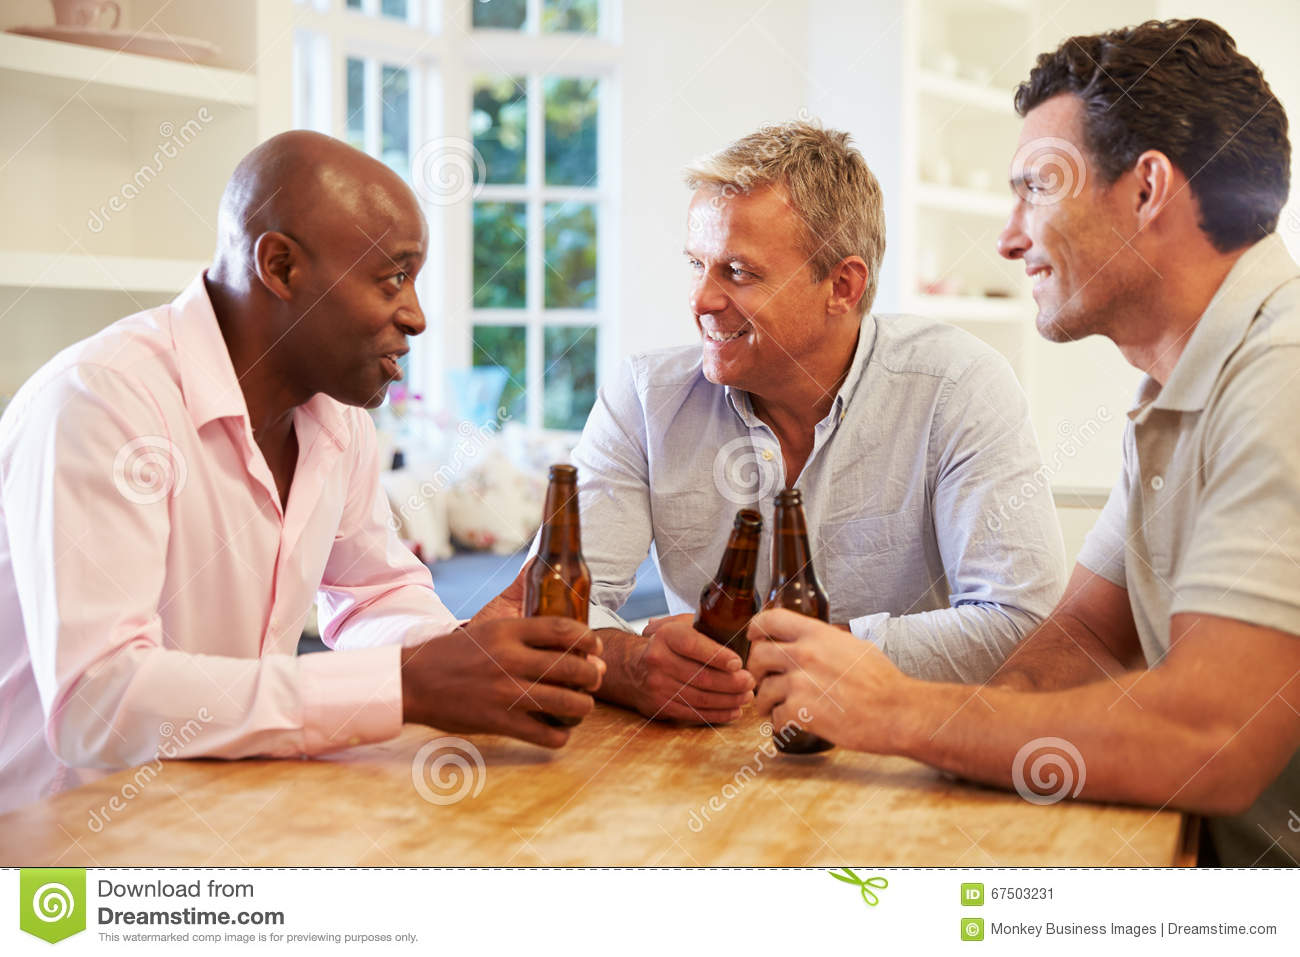 Amici maschii maturi Sit At Table Drinking Beer e parlare